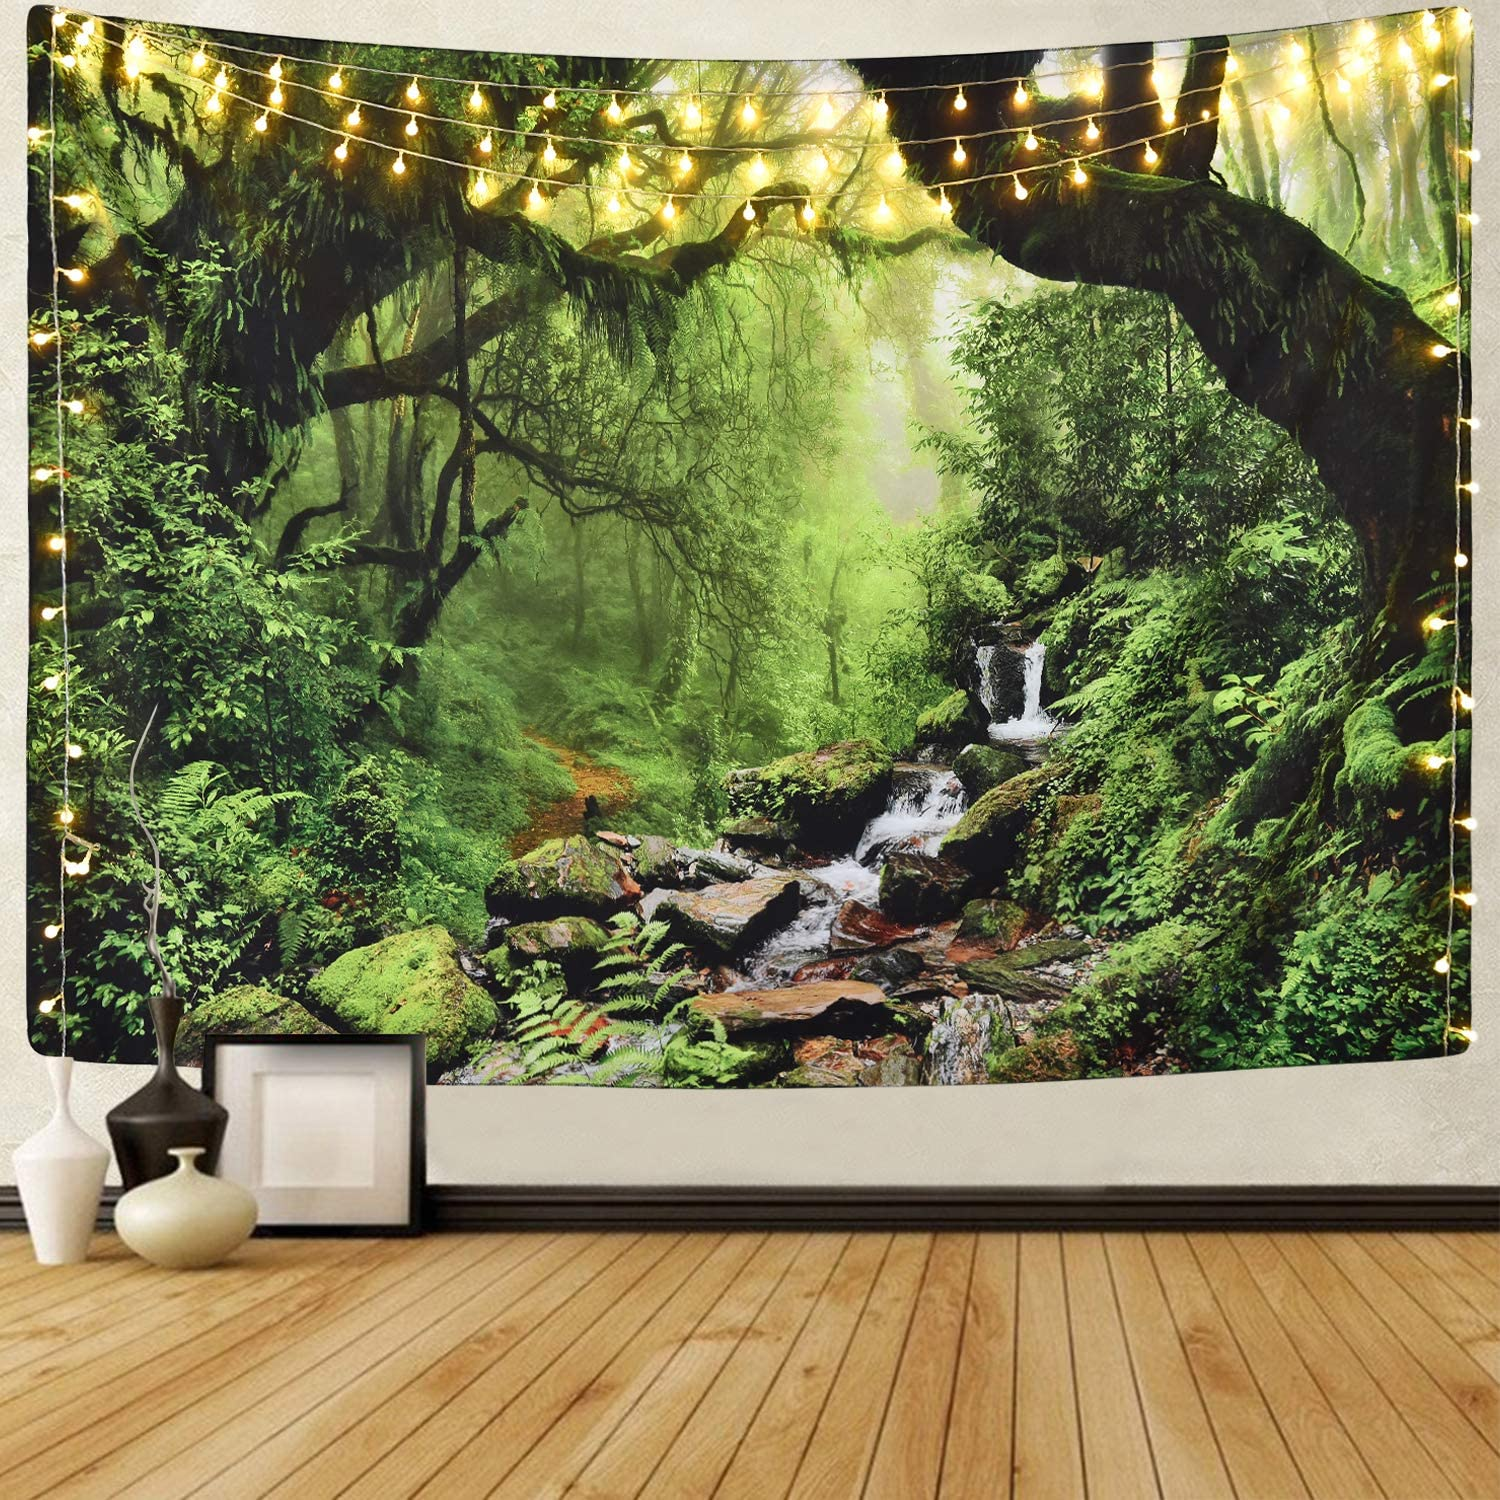 Sevenstars Rainforest Landscape Tapestry Wall Hanging Green Forest Tapestry Road Trees Tapestry Nature Scenery Misty Tapestry for Bedroom Living Room